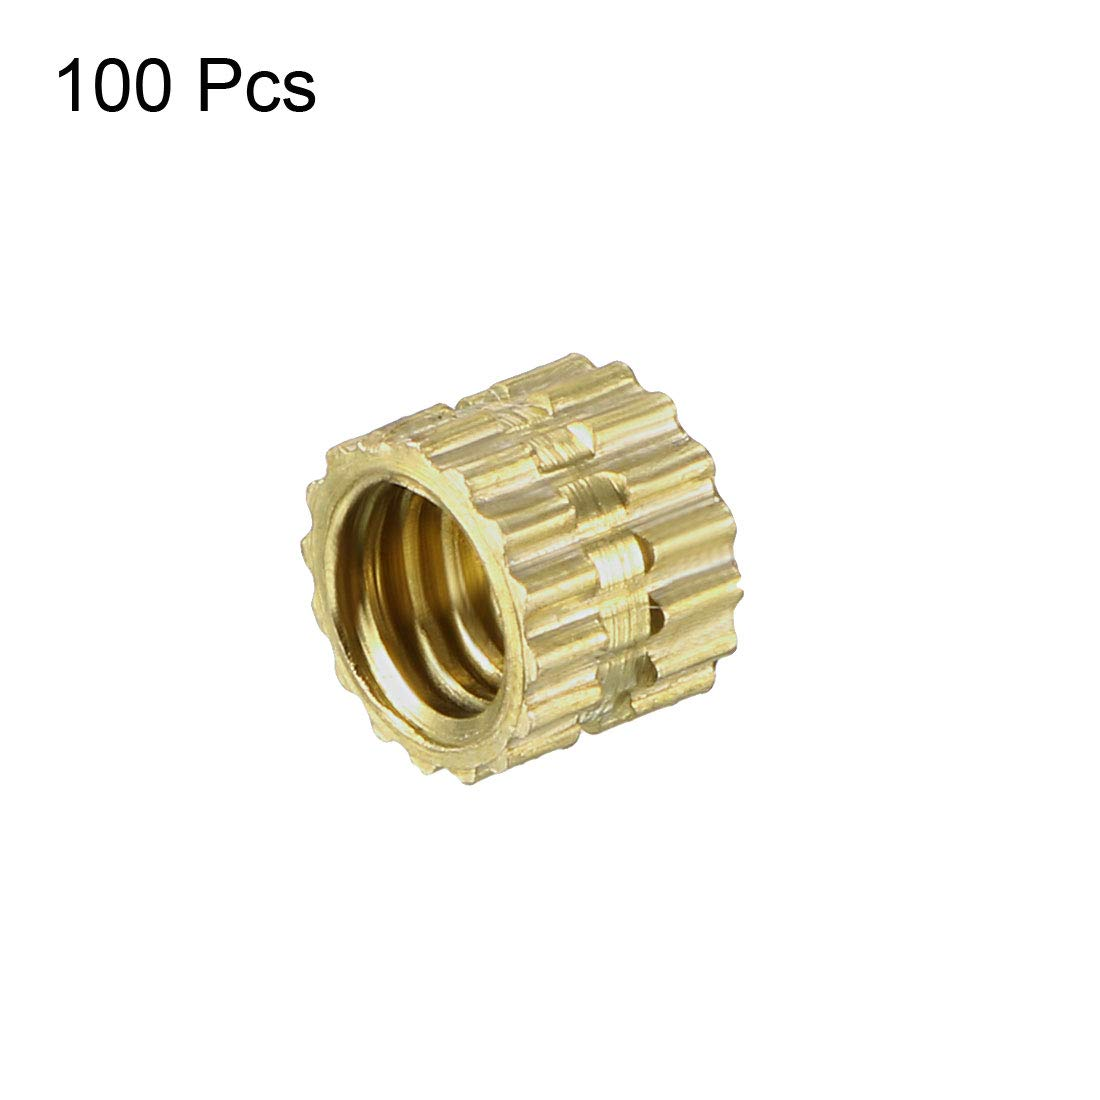 M6 x 8mm Pack of 100 uxcell Knurled Threaded Insert x 8.5mm Female Thread Brass Embedment Nuts L OD